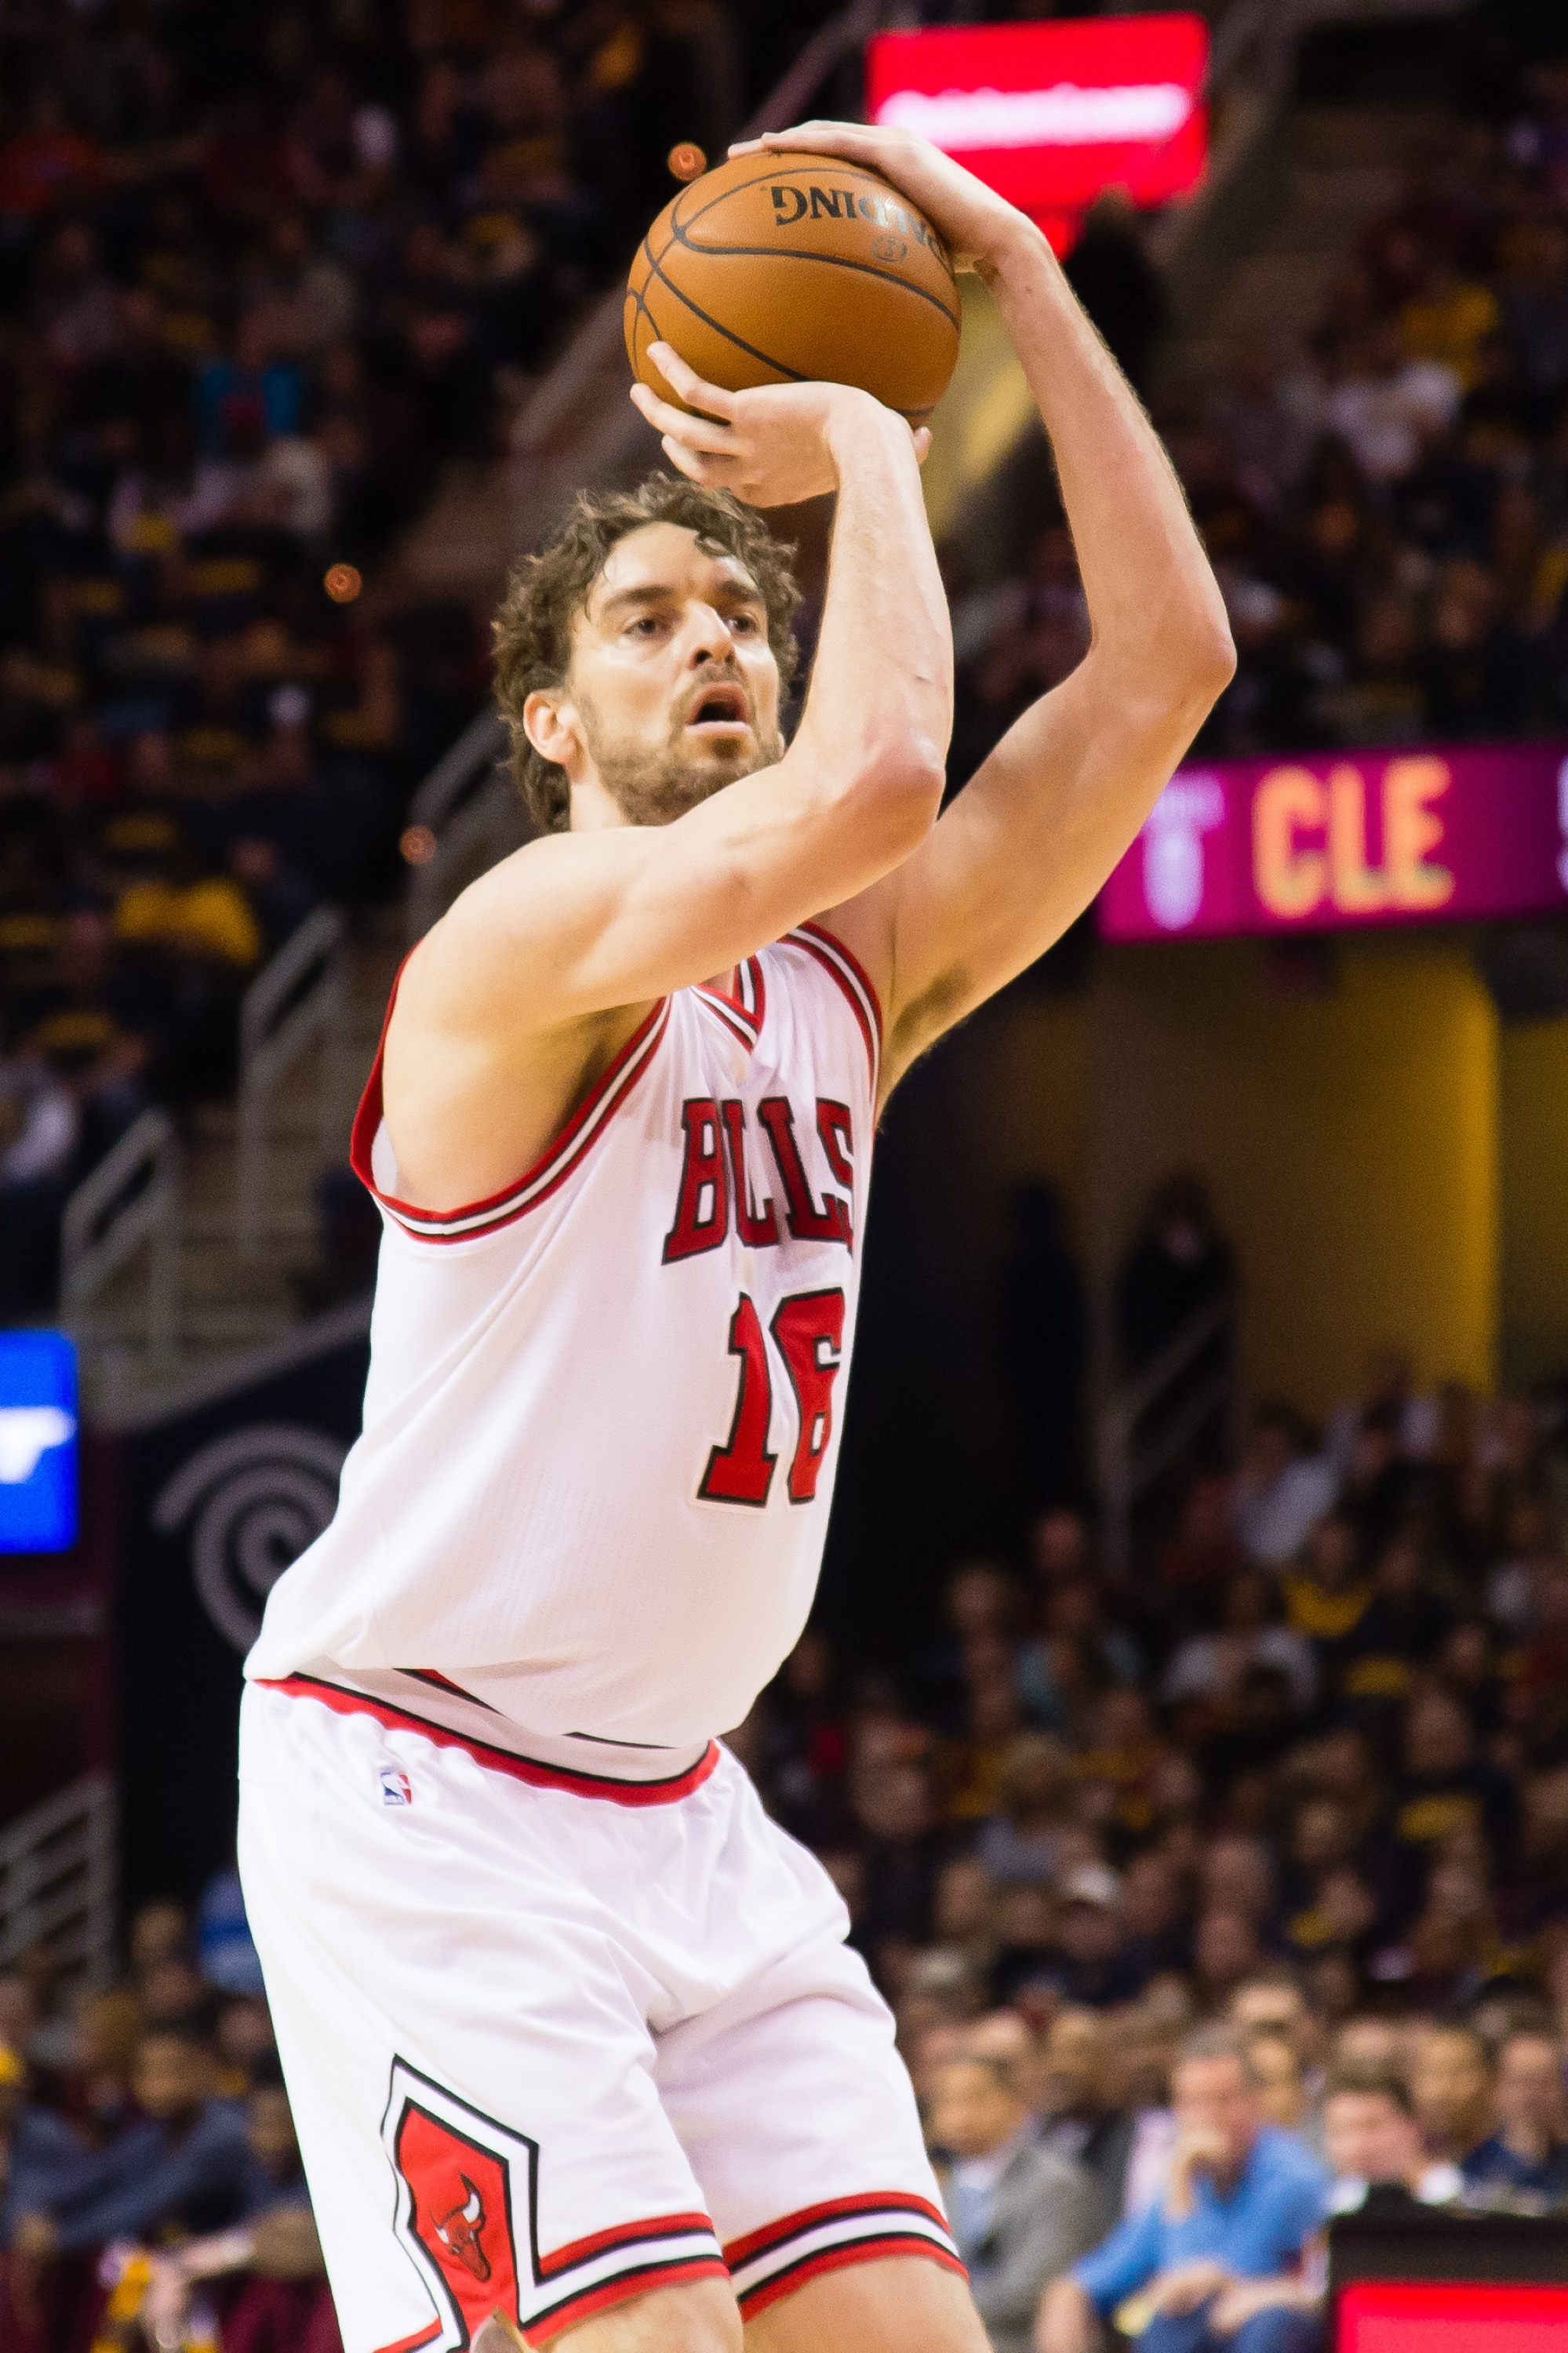 CLEVELAND, OH - APRIL 5: Pau Gasol #16 of the Chicago Bulls shoots during the first half against the Chicago Bulls at Quicken Loans Arena on April 5, 2015 in Cleveland, Ohio. NOTE TO USER: User expressly acknowledges and agrees that, by downloading and or using this photograph, User is consenting to the terms and conditions of the Getty Images License Agreement. (Photo by Jason Miller/Getty Images)